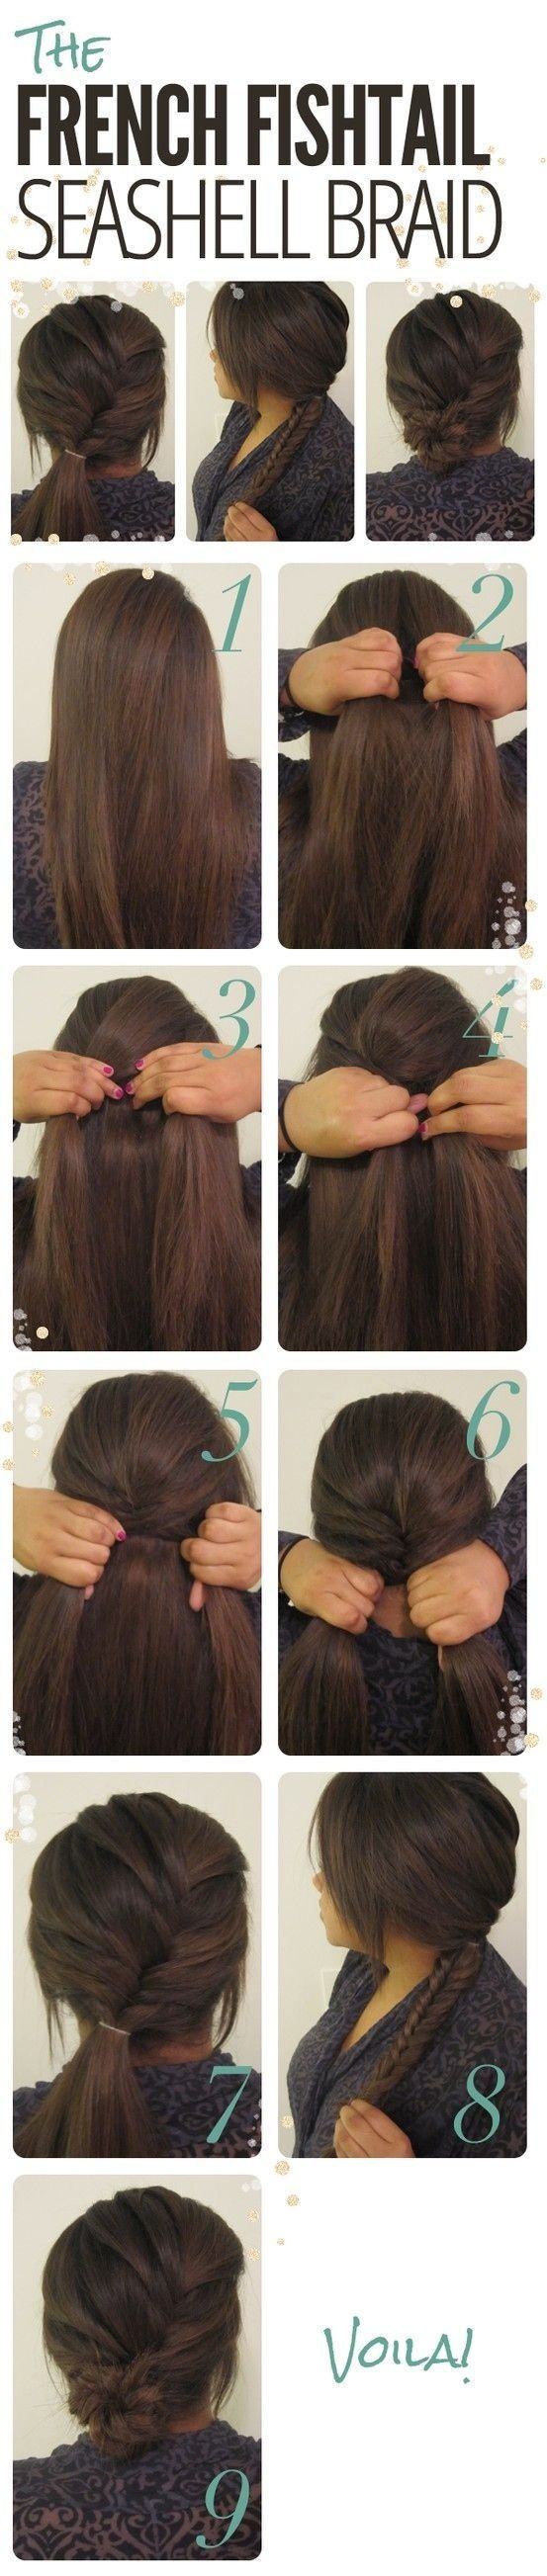 17 Hairstyles To Help You Survive The Indian Summer And Still Look Flawless